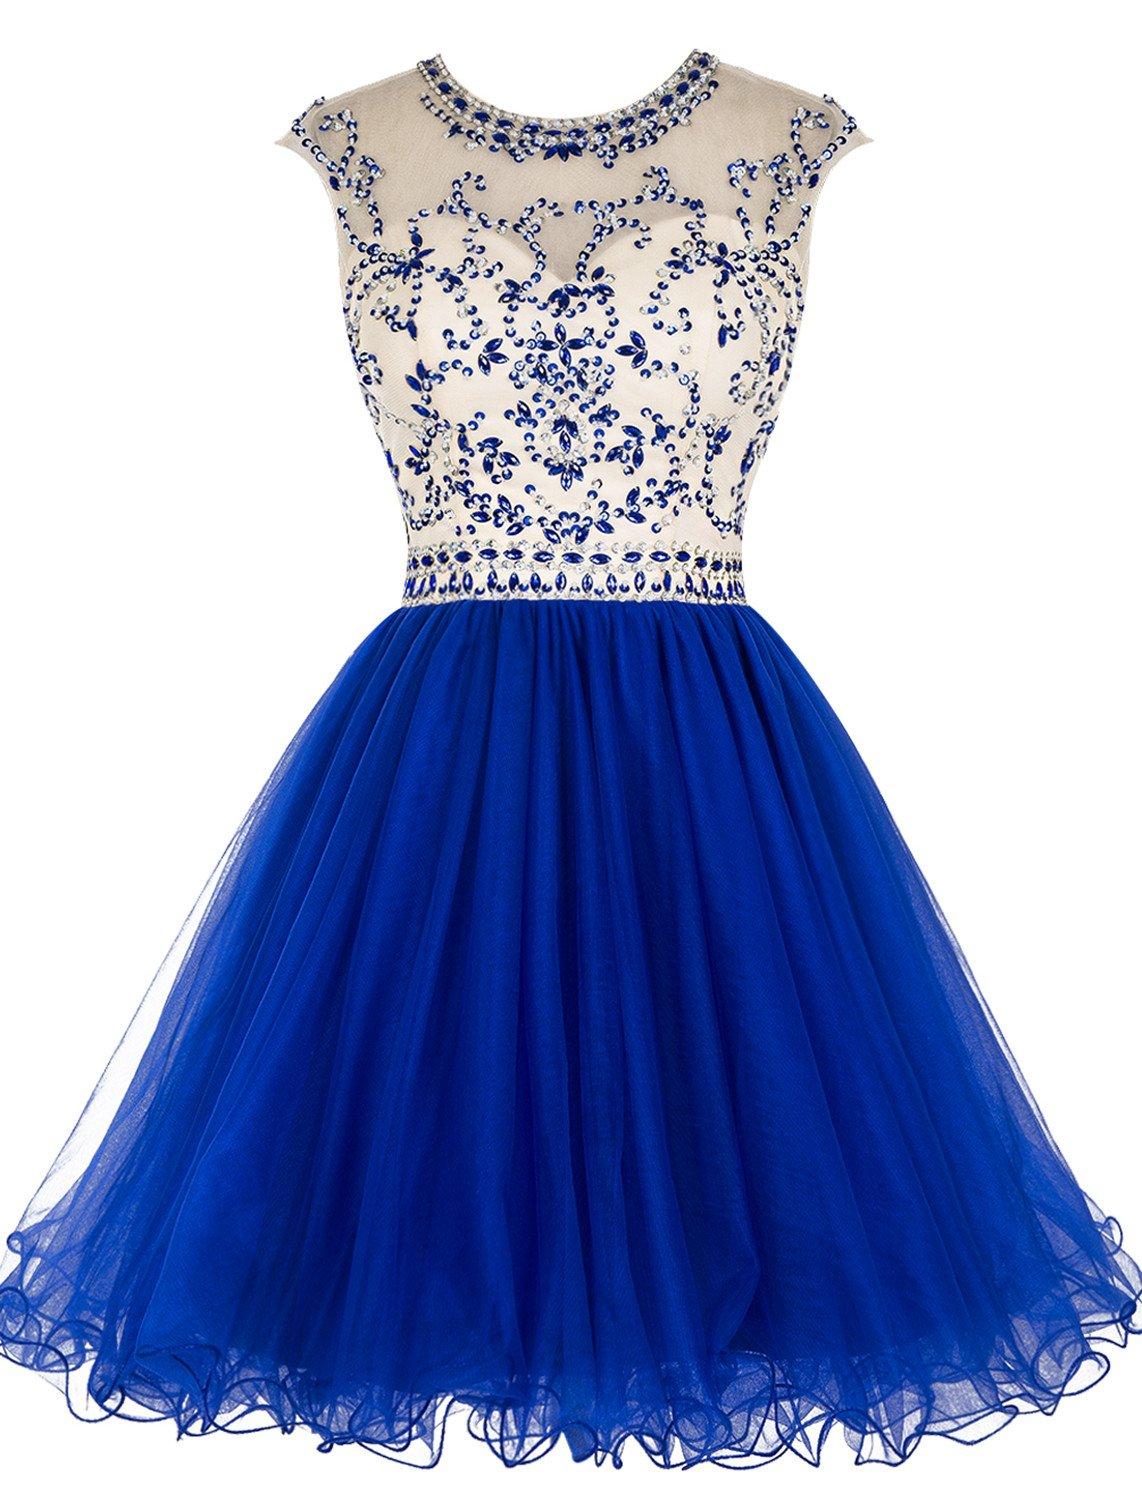 ALAGIRLS Beaded Prom Dress Short Tulle Homecoming Dress Hollow Back Royal Blue US20Plus